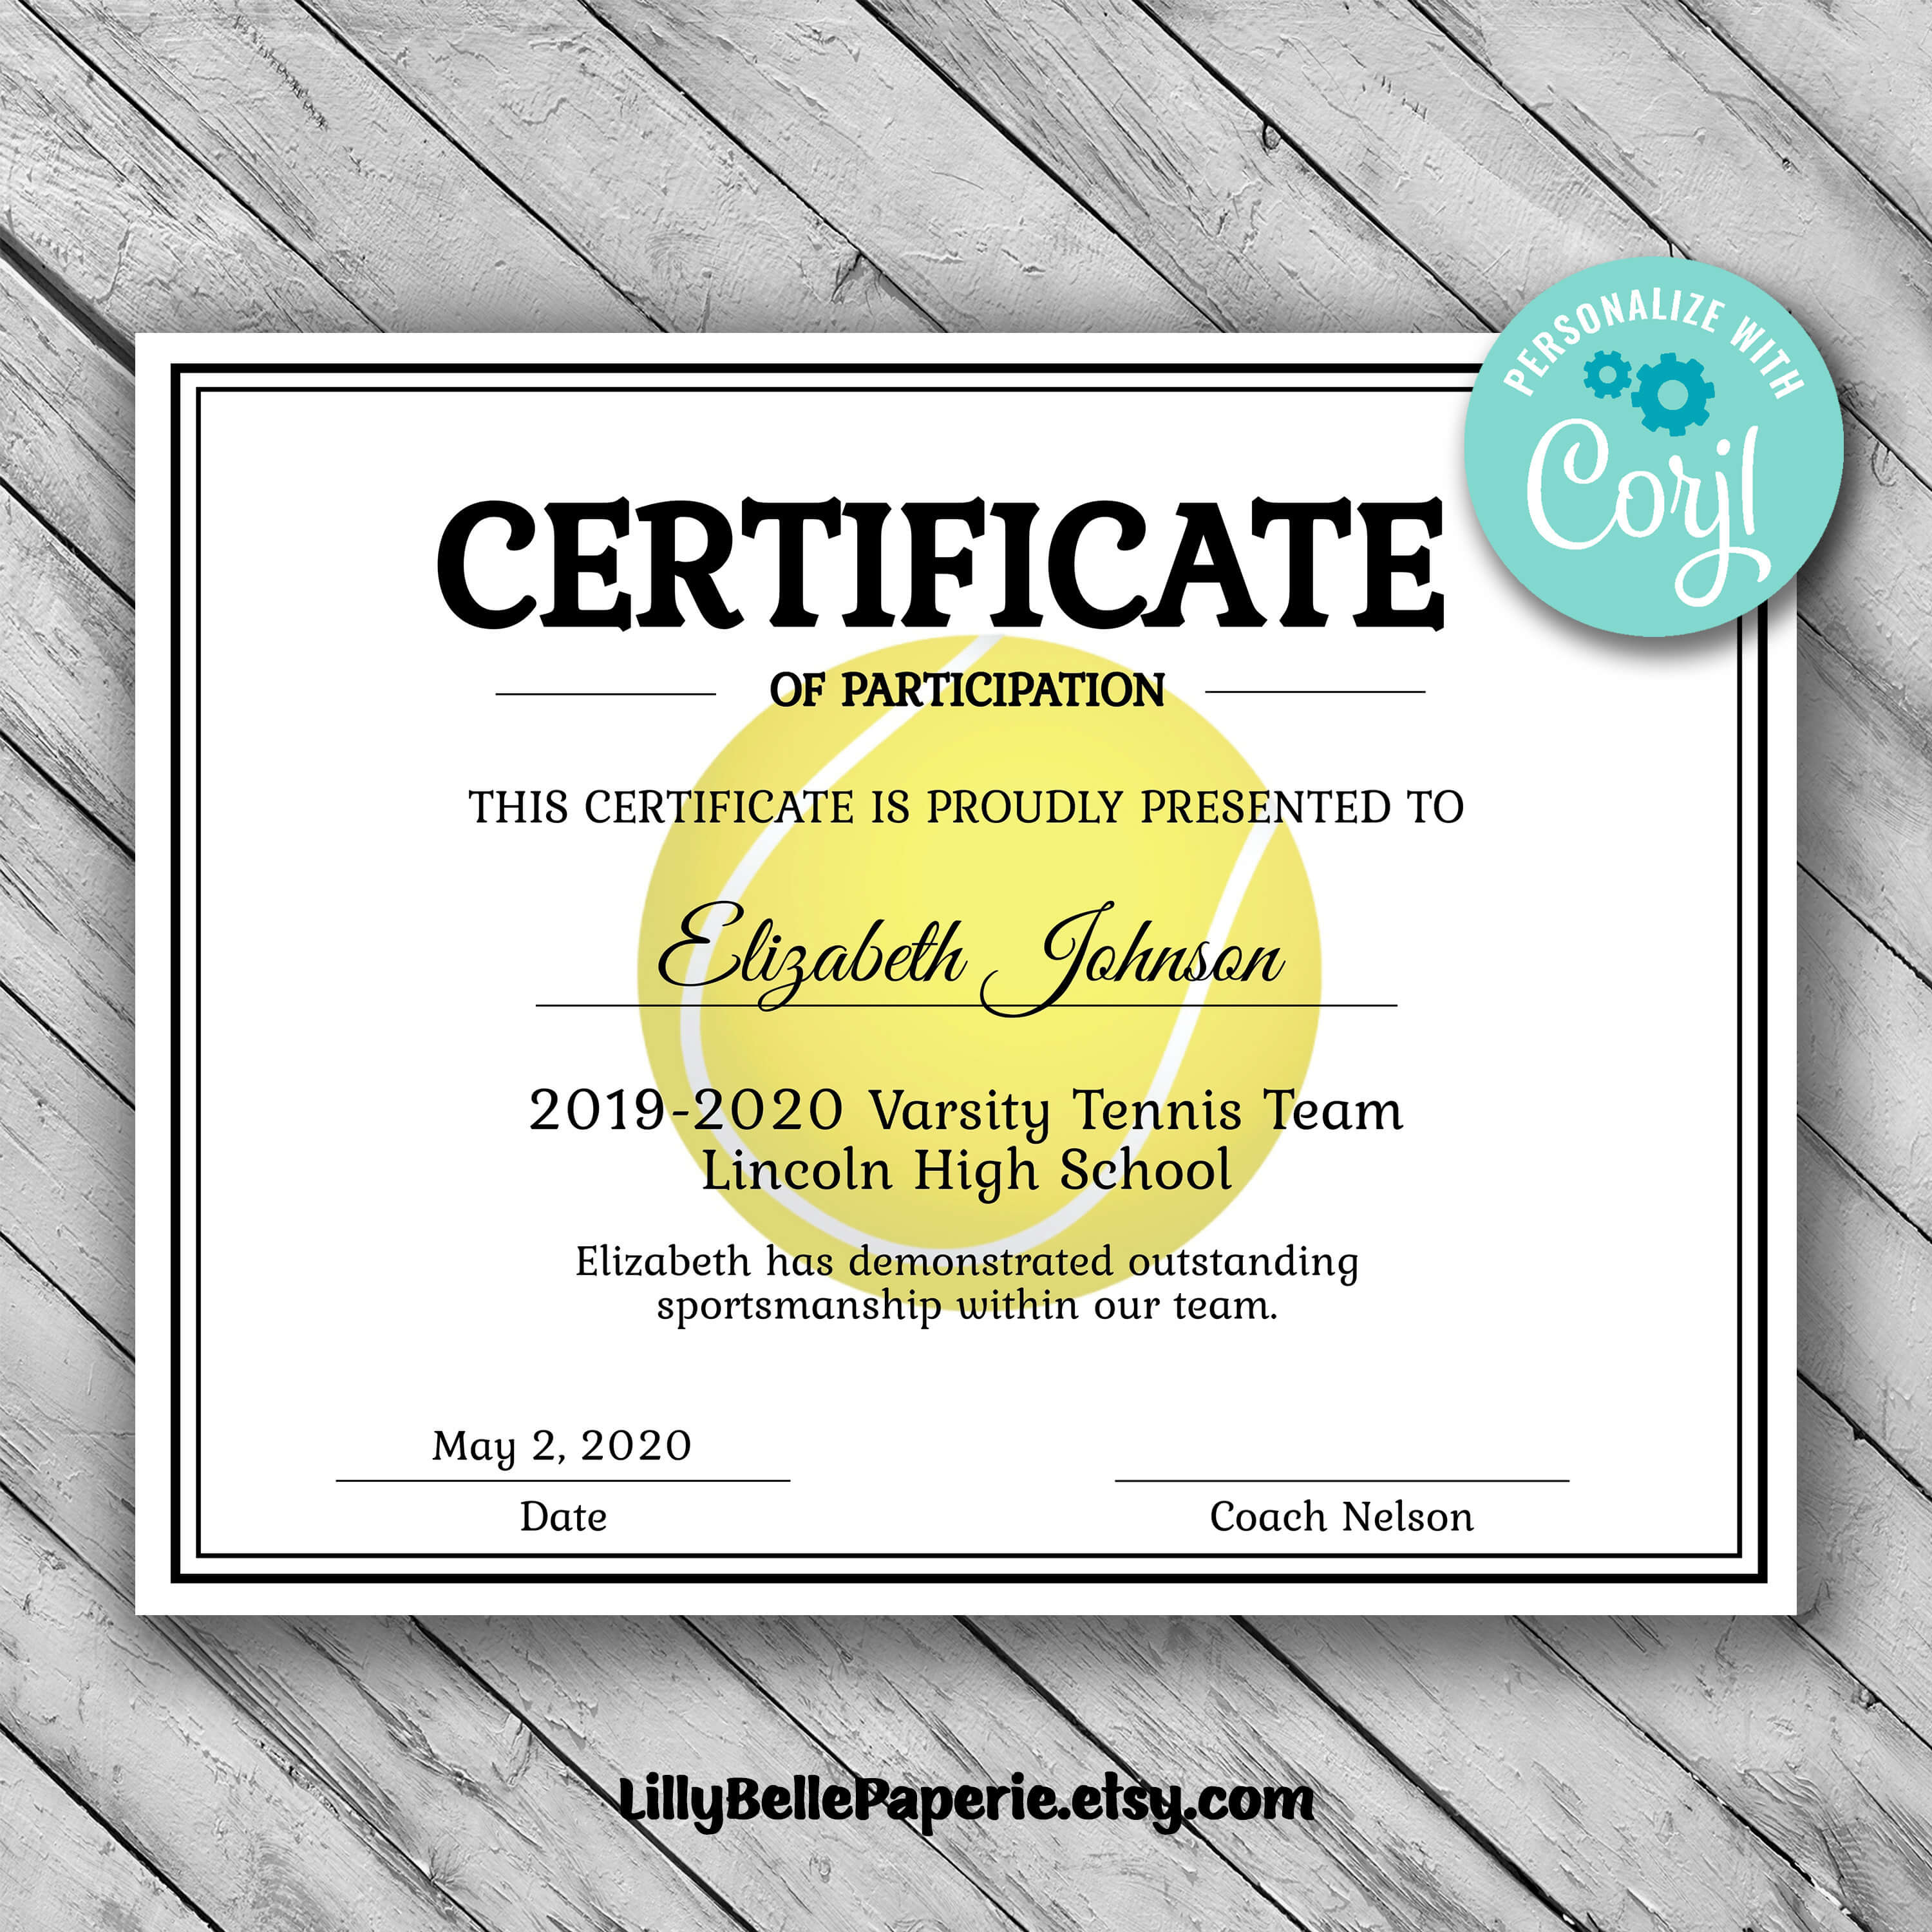 Editable Tennis Certificate Template - Printable Certificate Template -  Tennis Certificate Template Personalized Diploma Certificate within Tennis Certificate Template Free